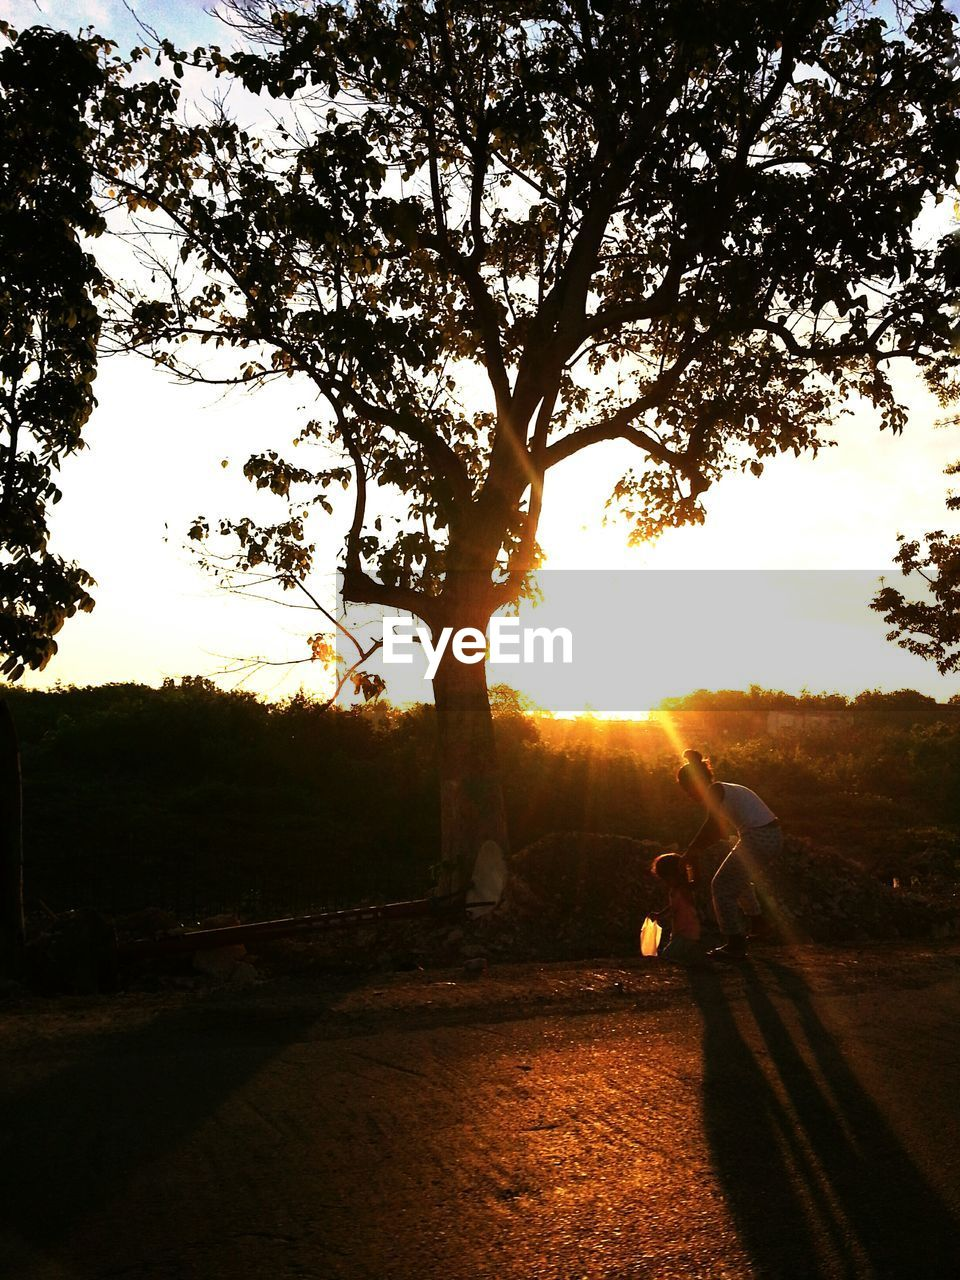 tree, silhouette, sunlight, sunset, outdoors, sky, sun, nature, real people, one person, branch, day, beauty in nature, people